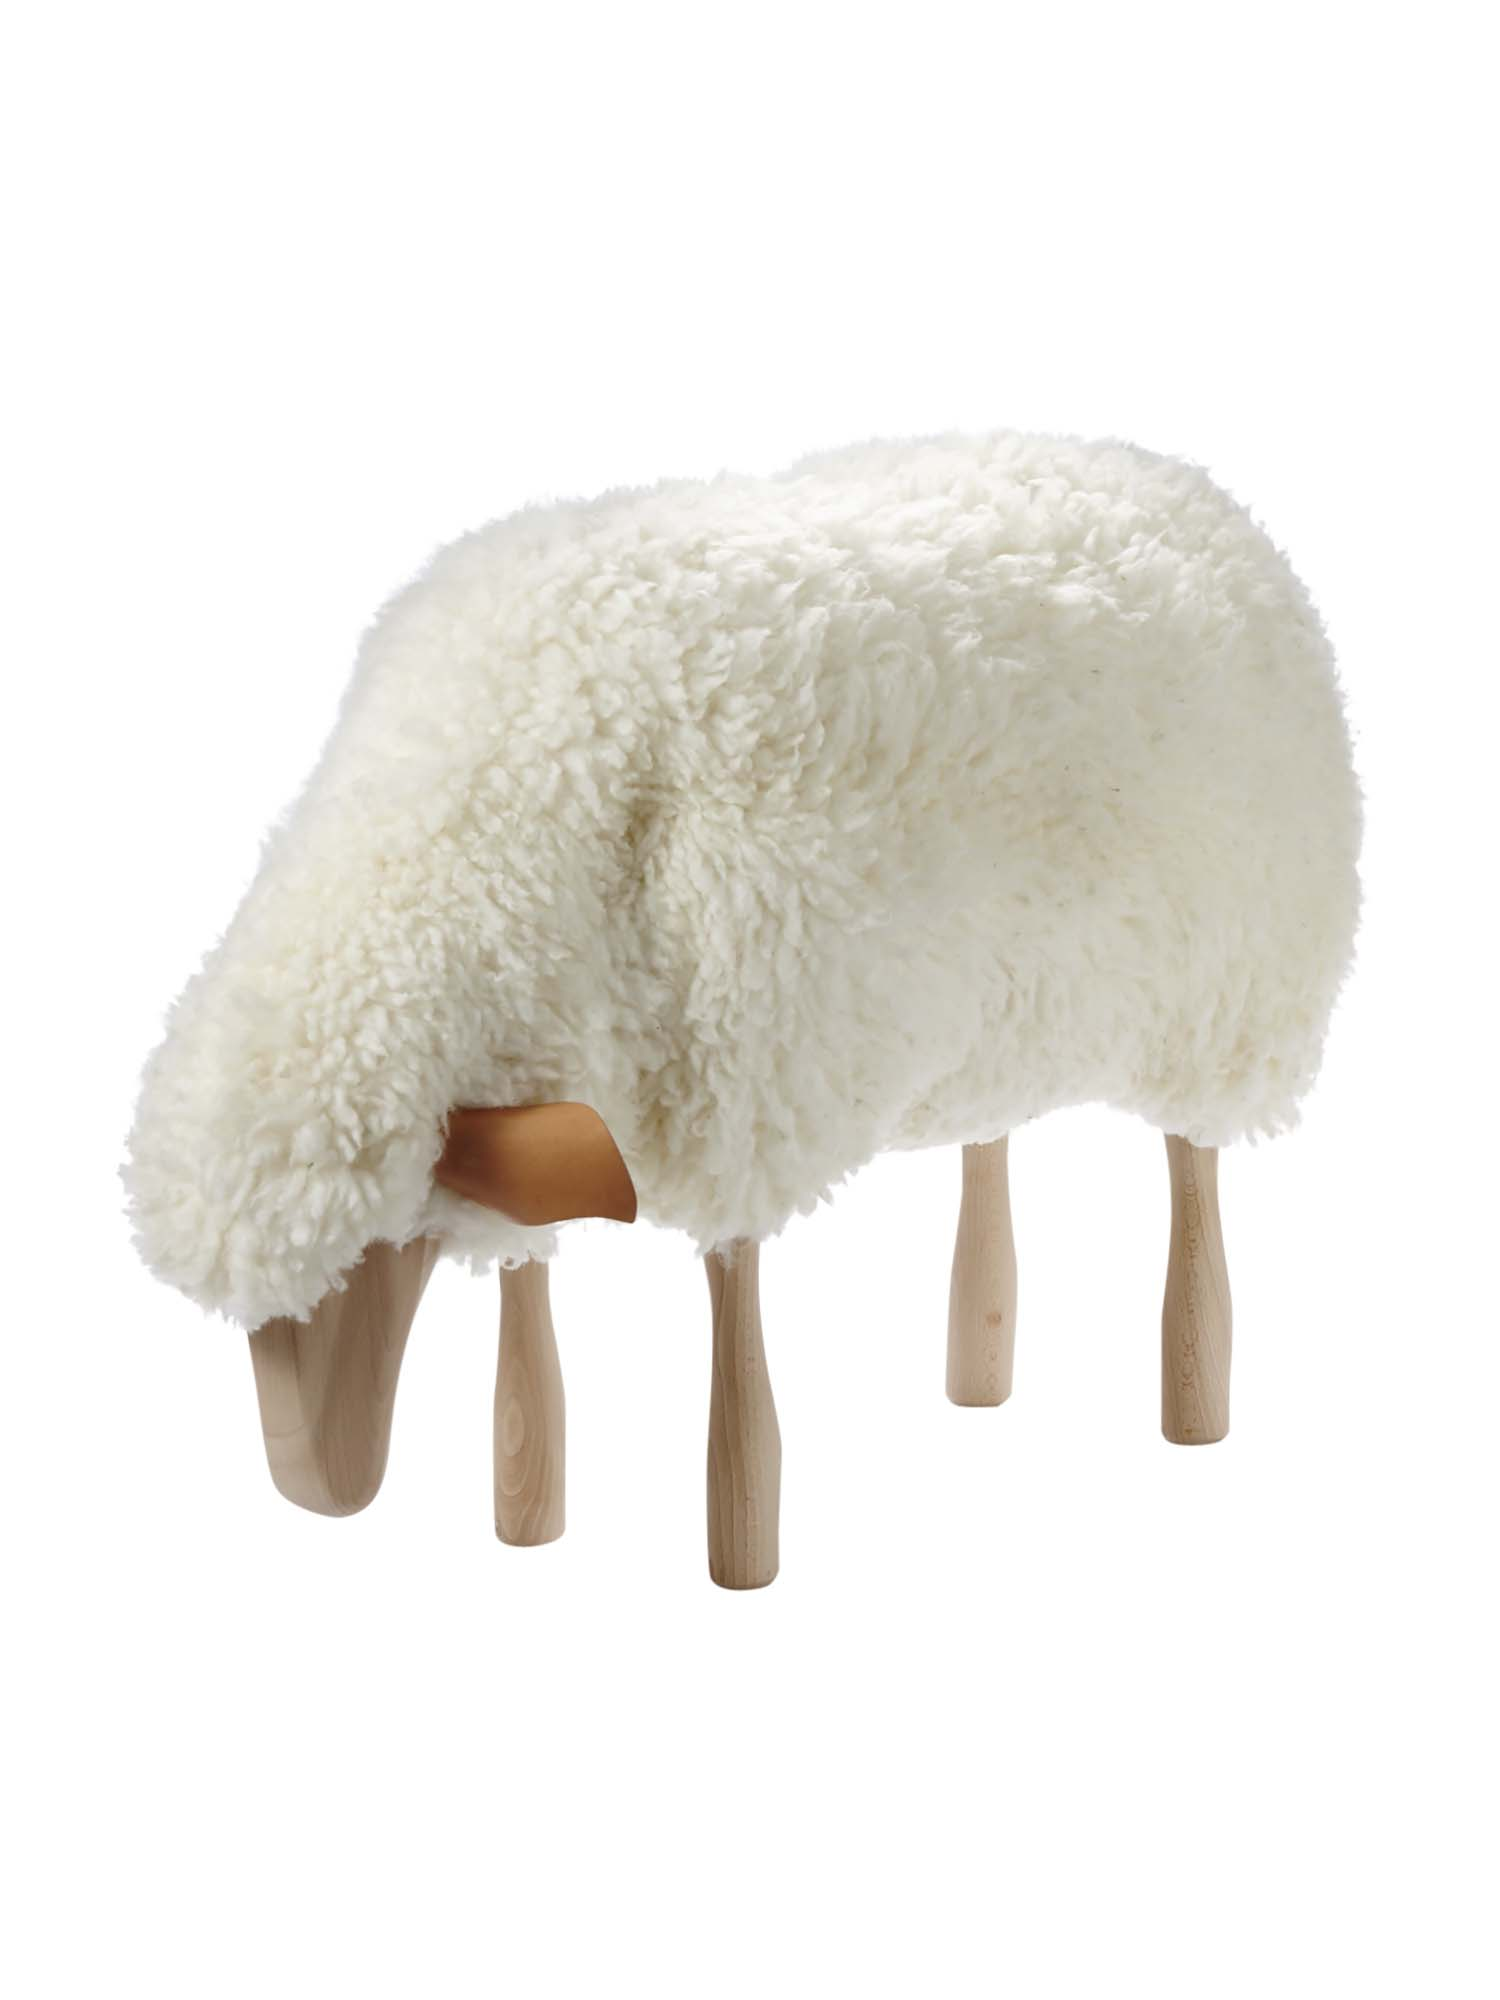 Grazing Sheep Stool Medium   Gorsuch Amazing Pictures